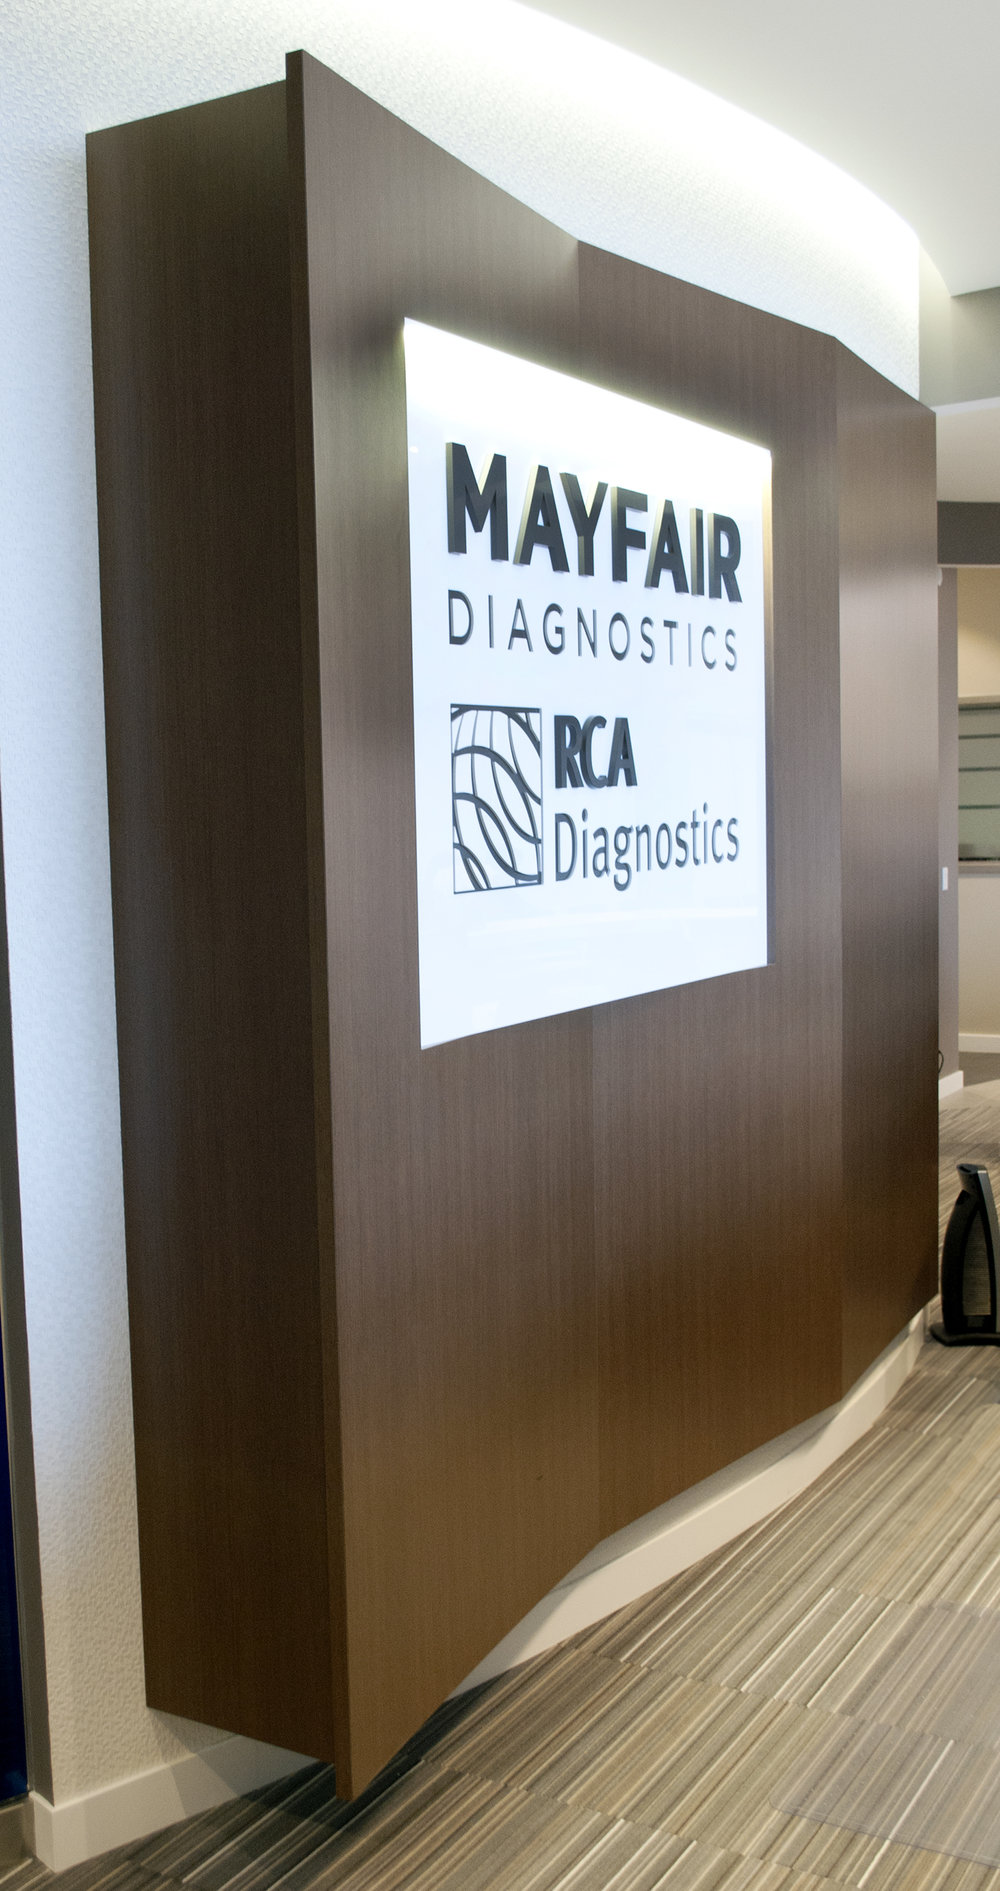 Mayfair Diagnostics A CCC.jpg